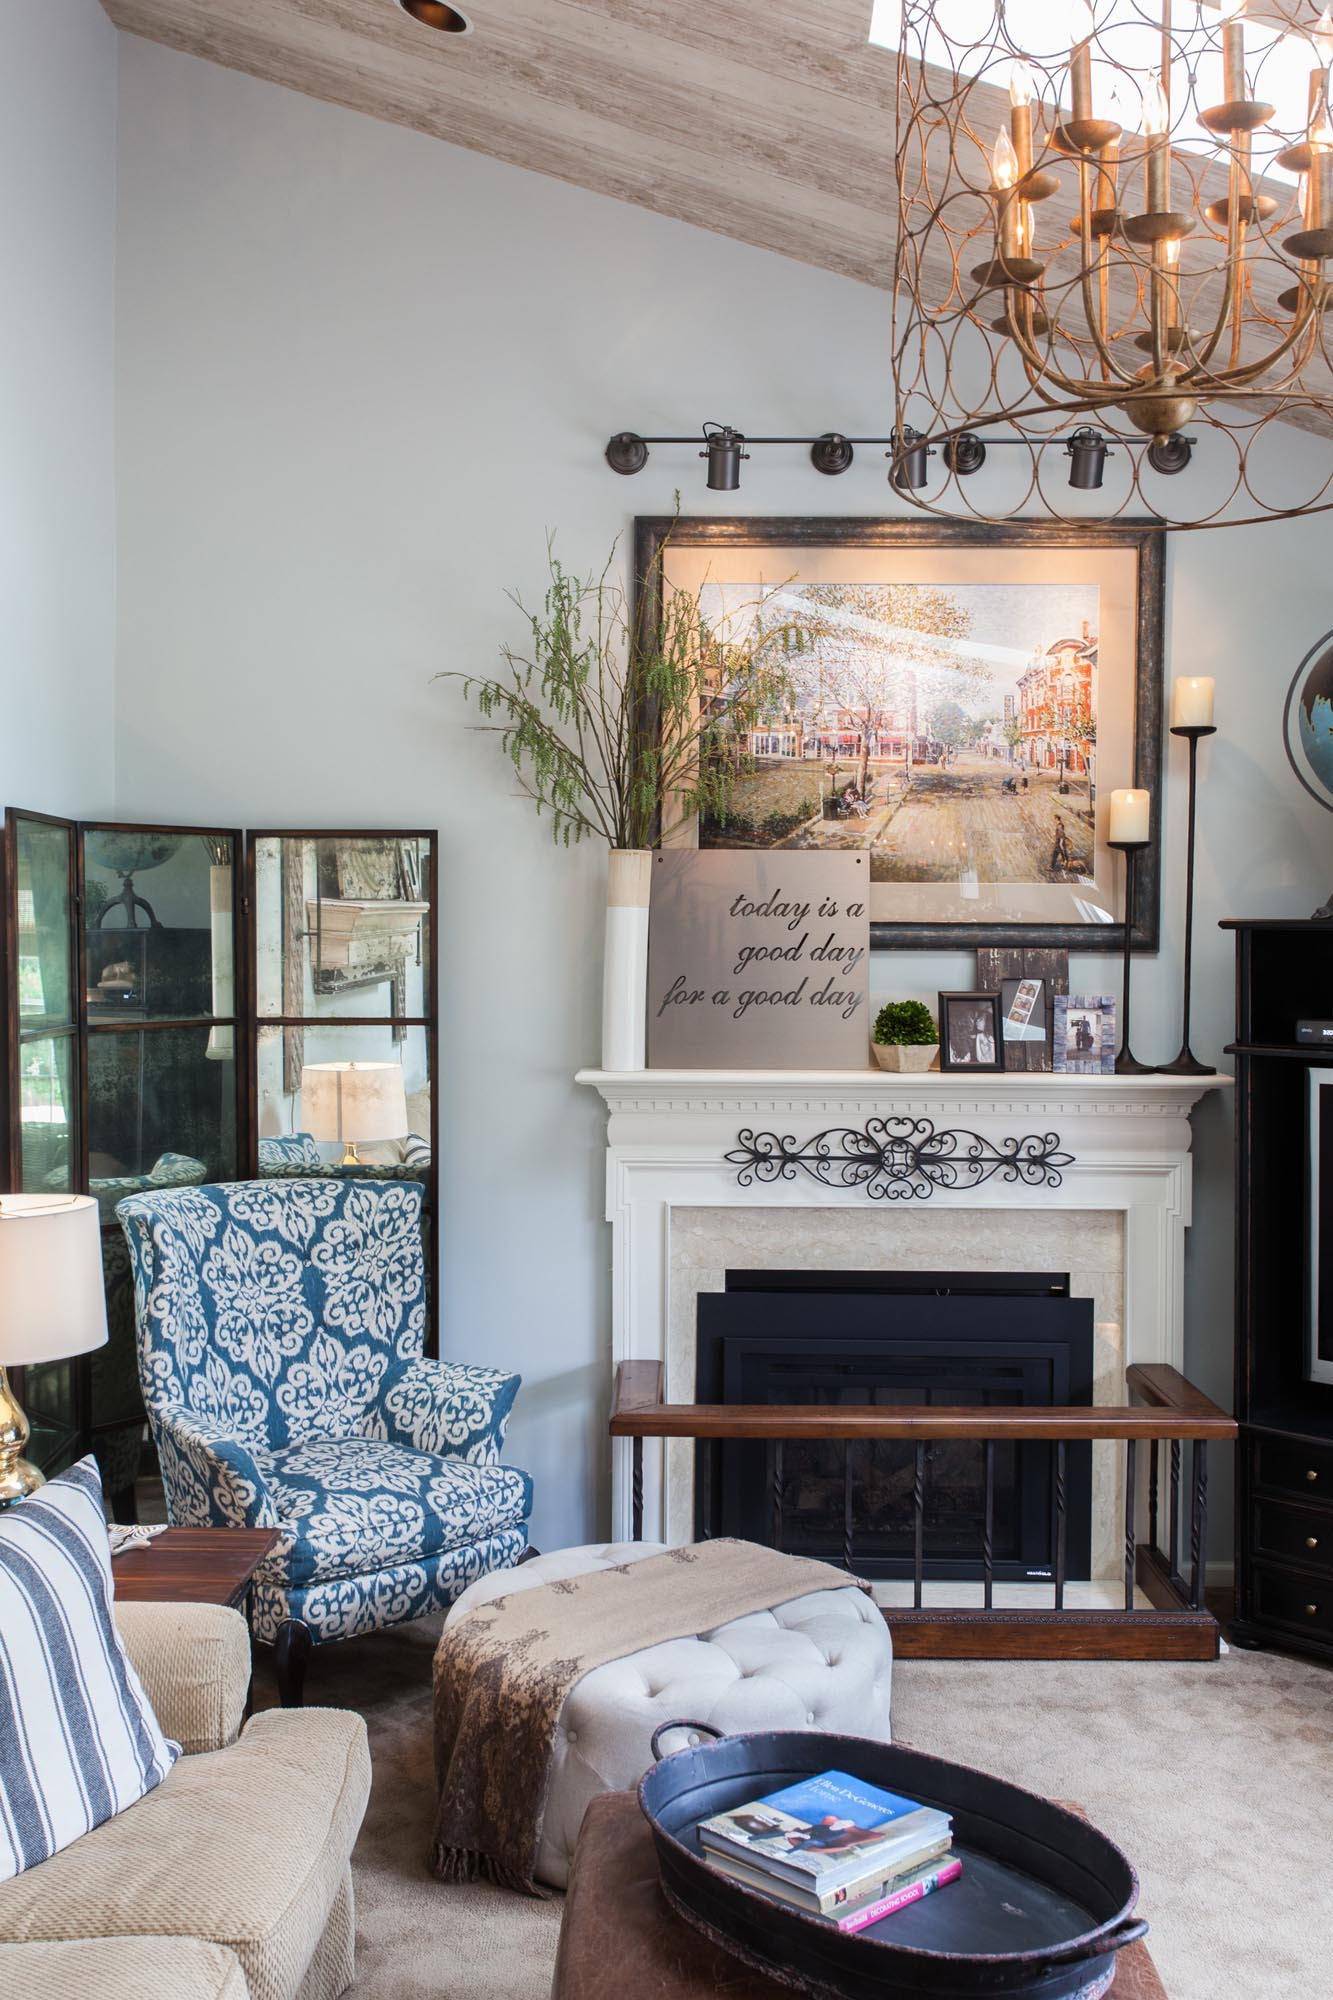 Fireplace with mantle and comfortable seating